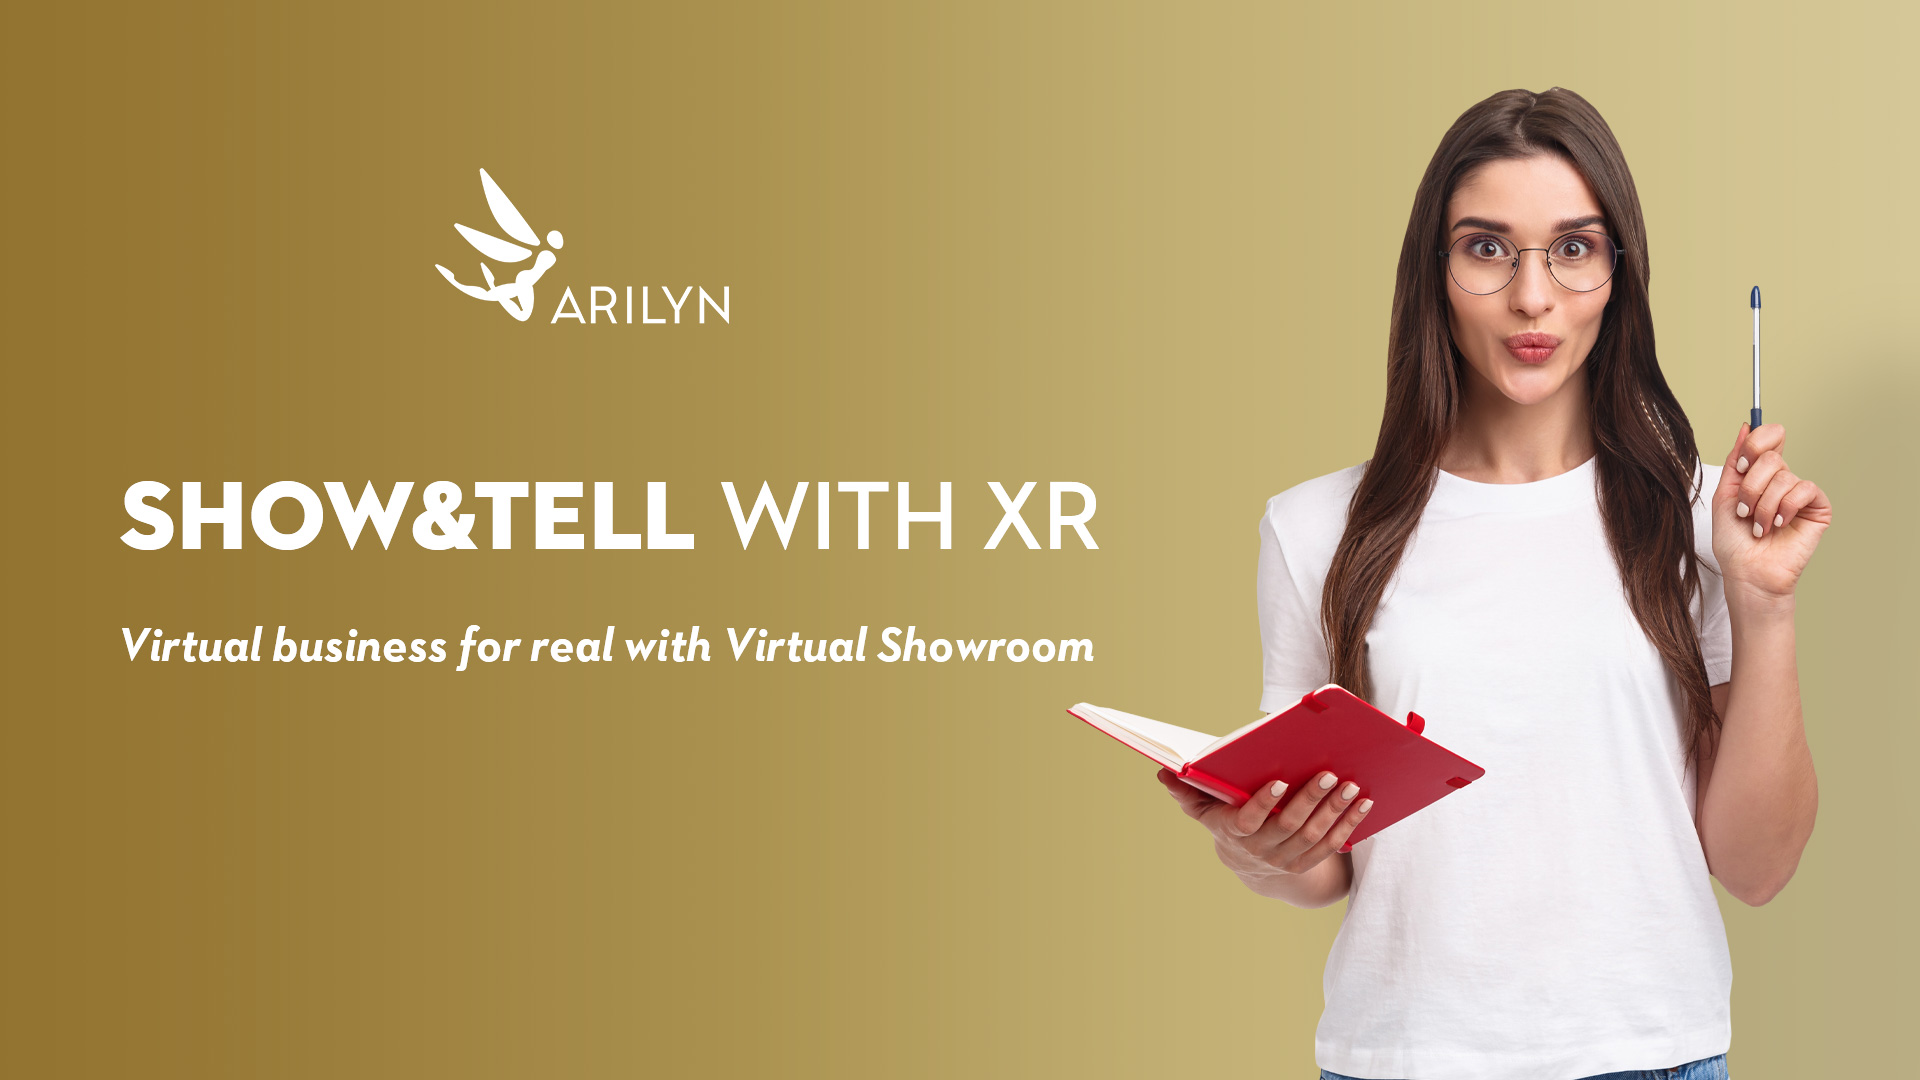 Make virtual business real - show&tell in Virtual Showroom